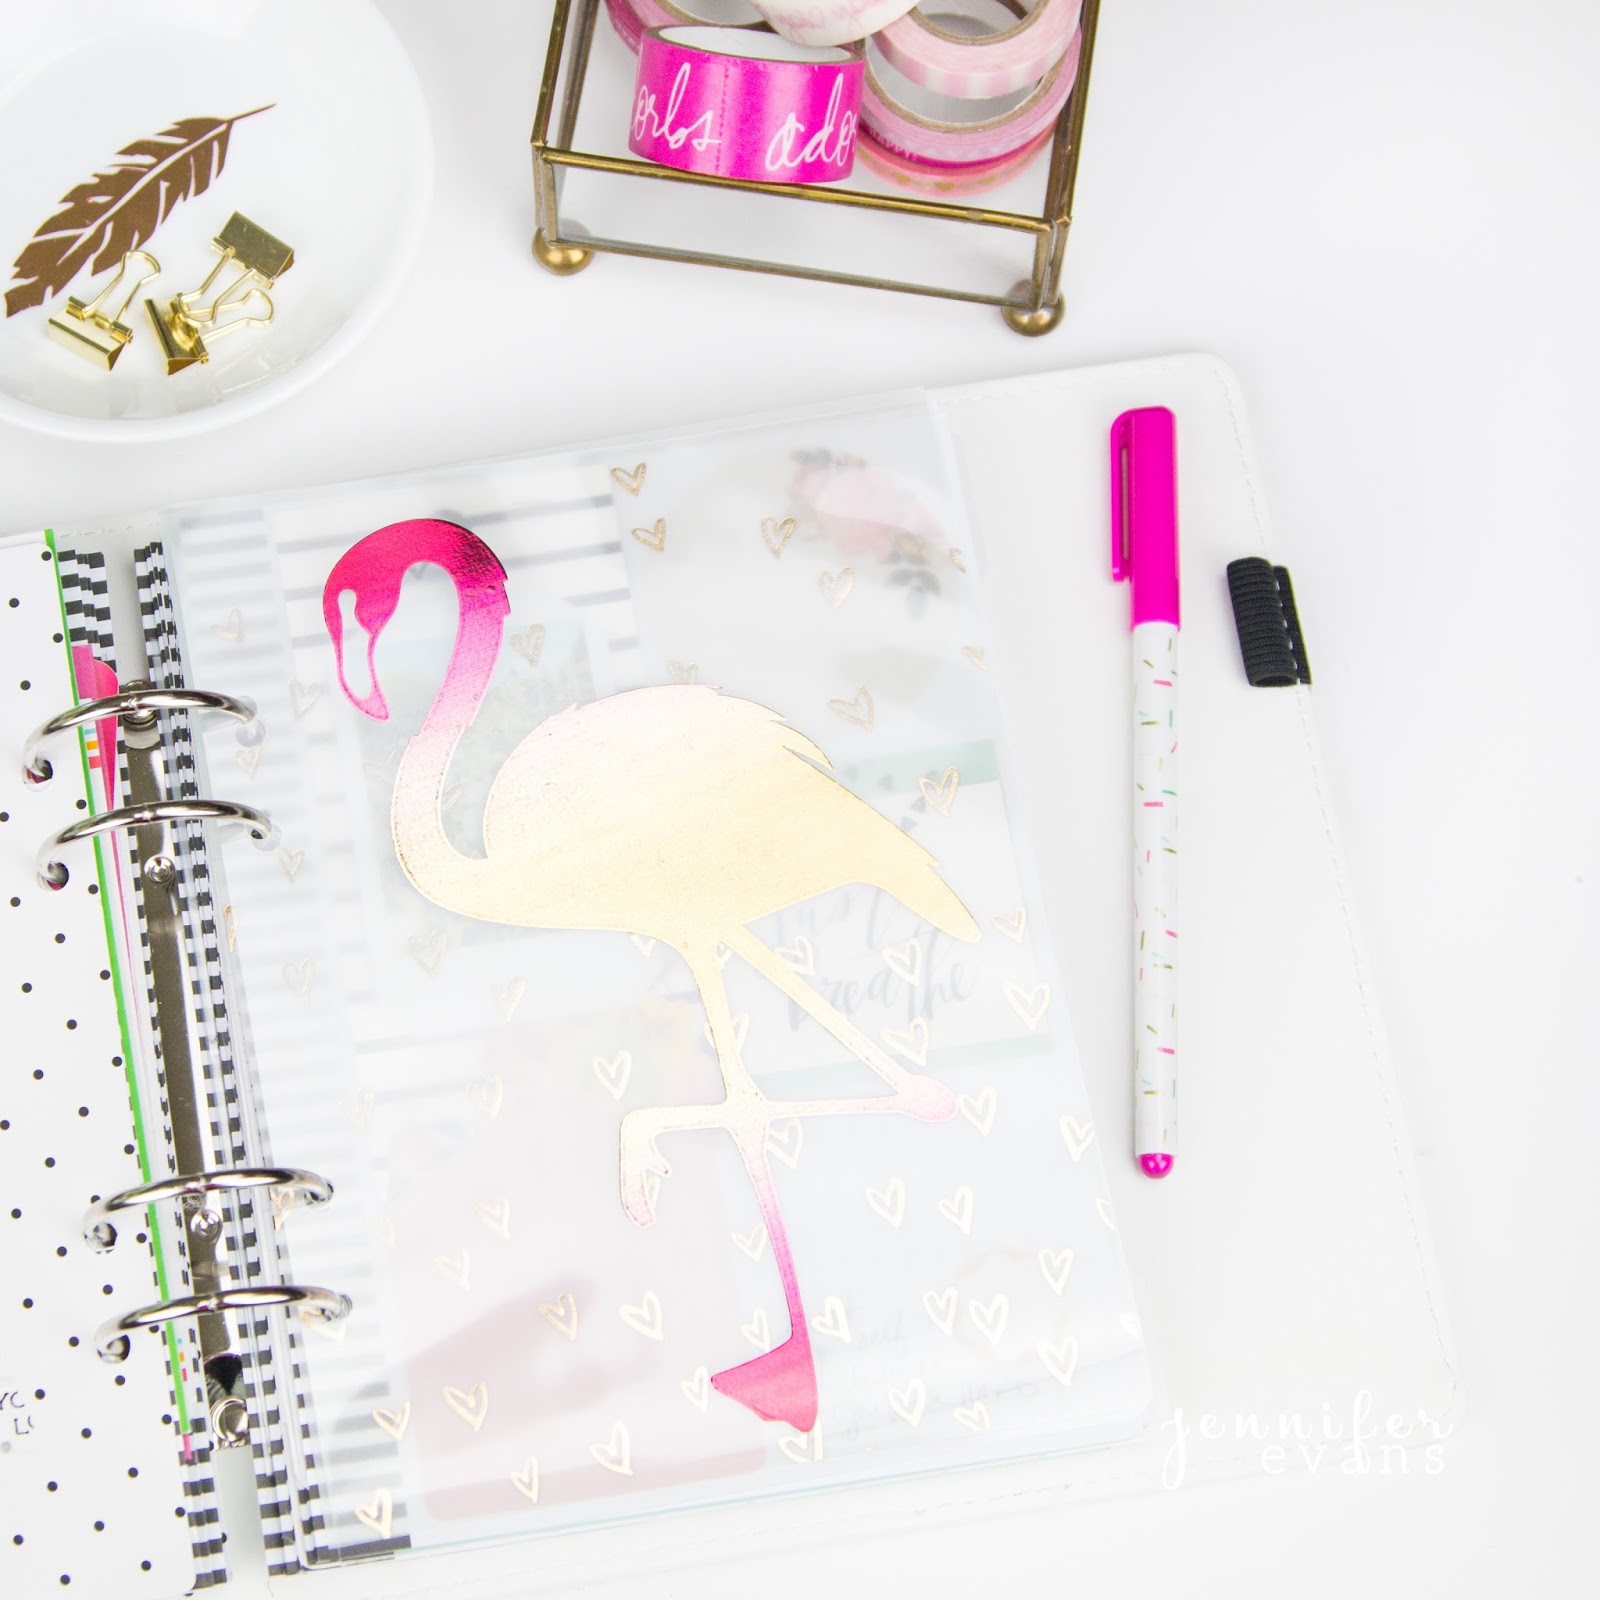 DIY foiled planner dashboards by @createoften with the @heidiswapp minc